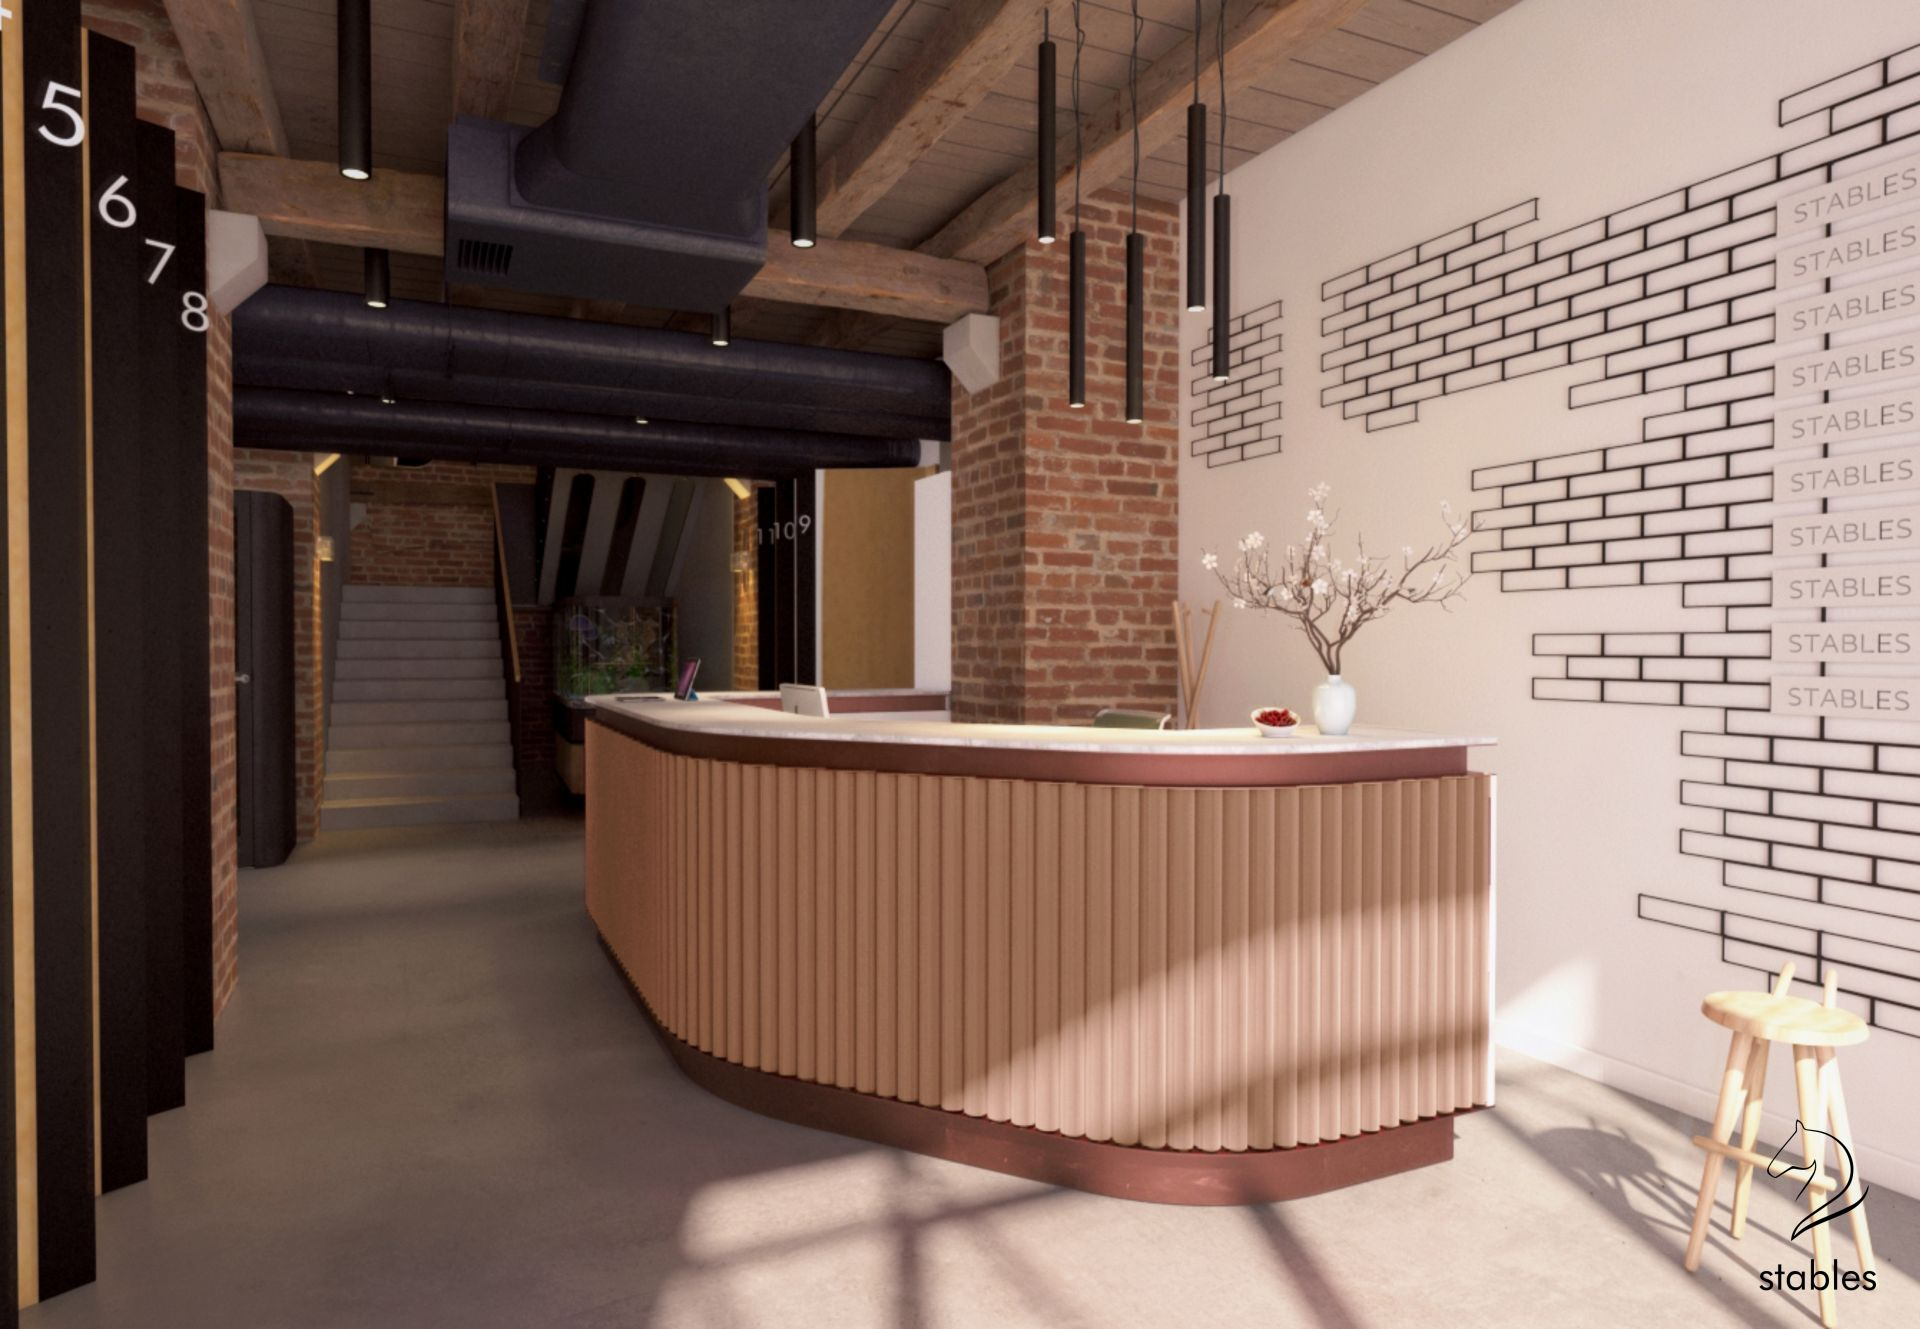 Stables Office, Cluj-Napoca